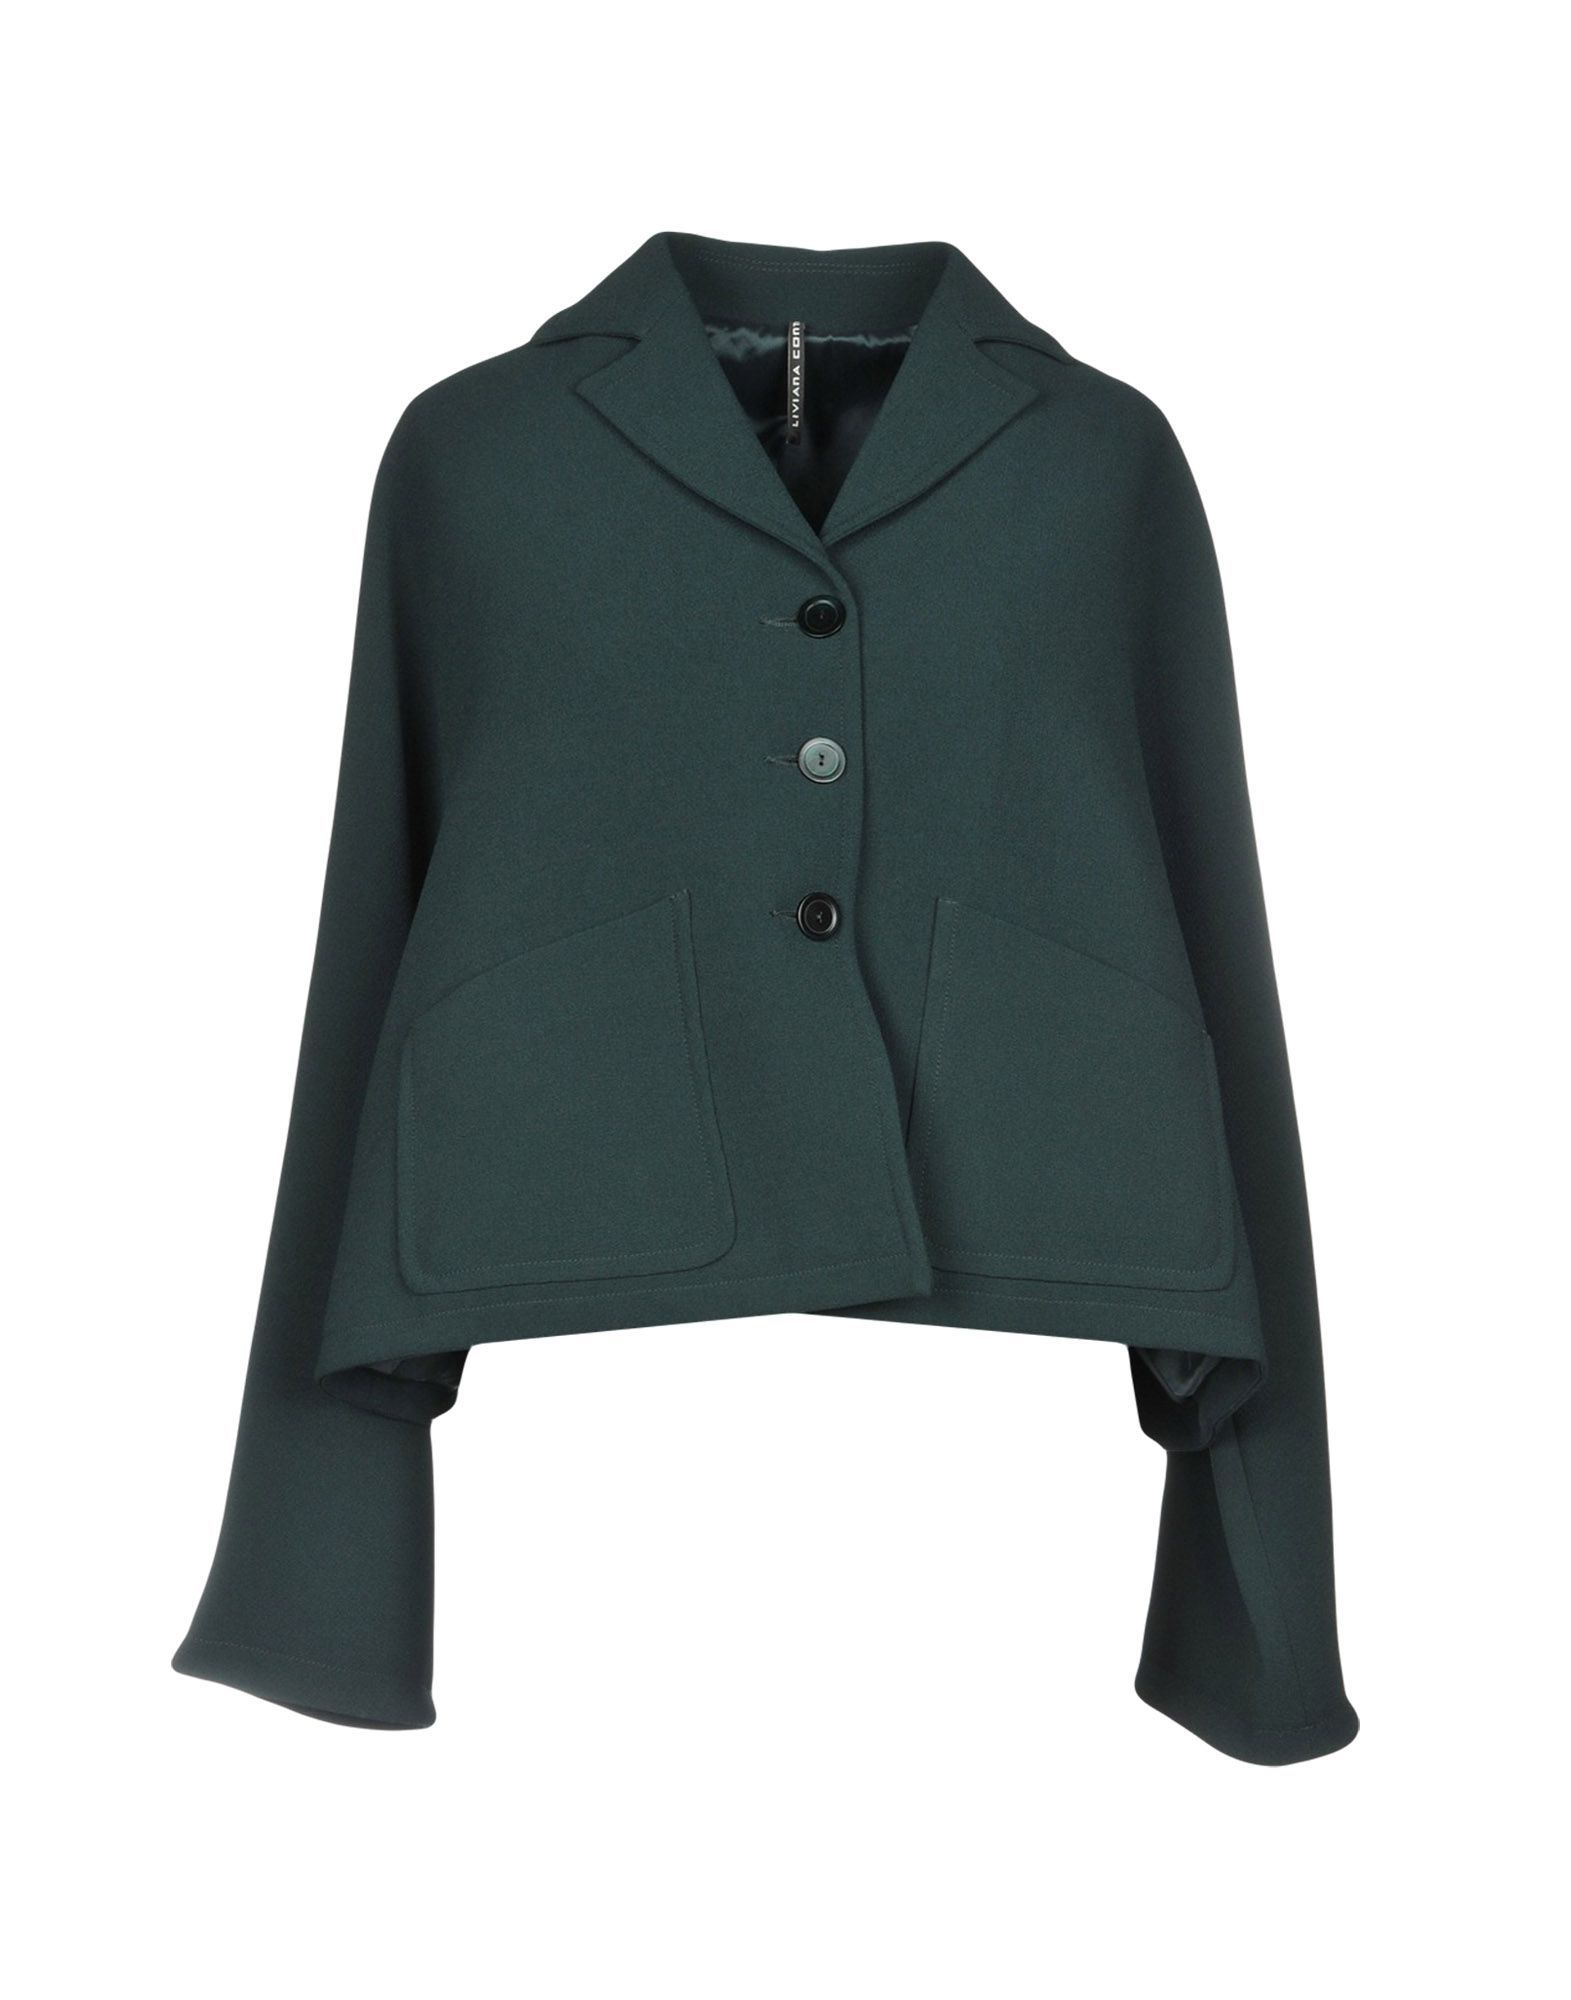 Suits And Jackets Liviana Conti Dark Green Women's Polyester